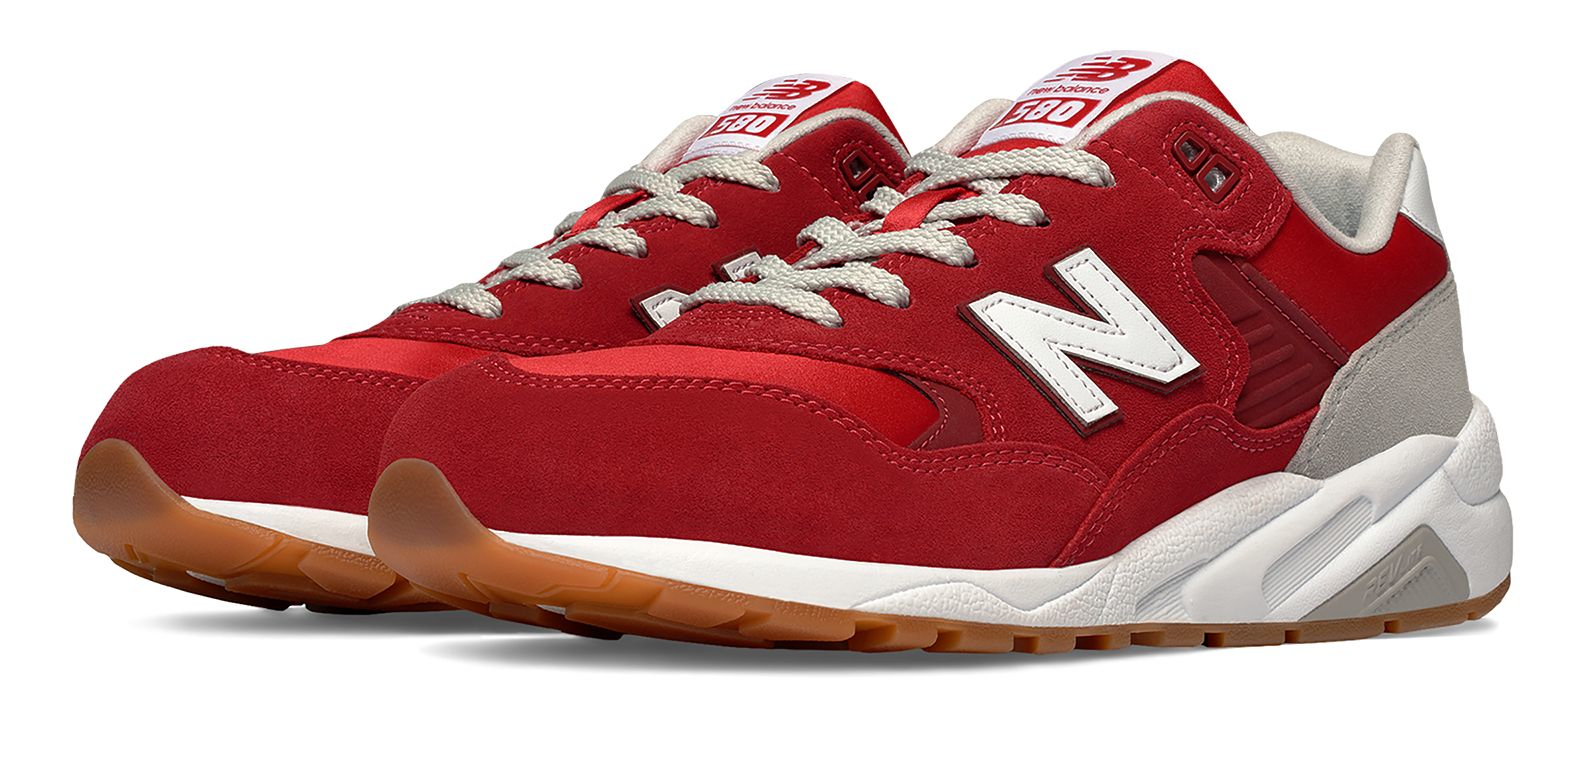 sports shoes 3019f addc3 New Balance Red 580 Elite Edition Revlite for men